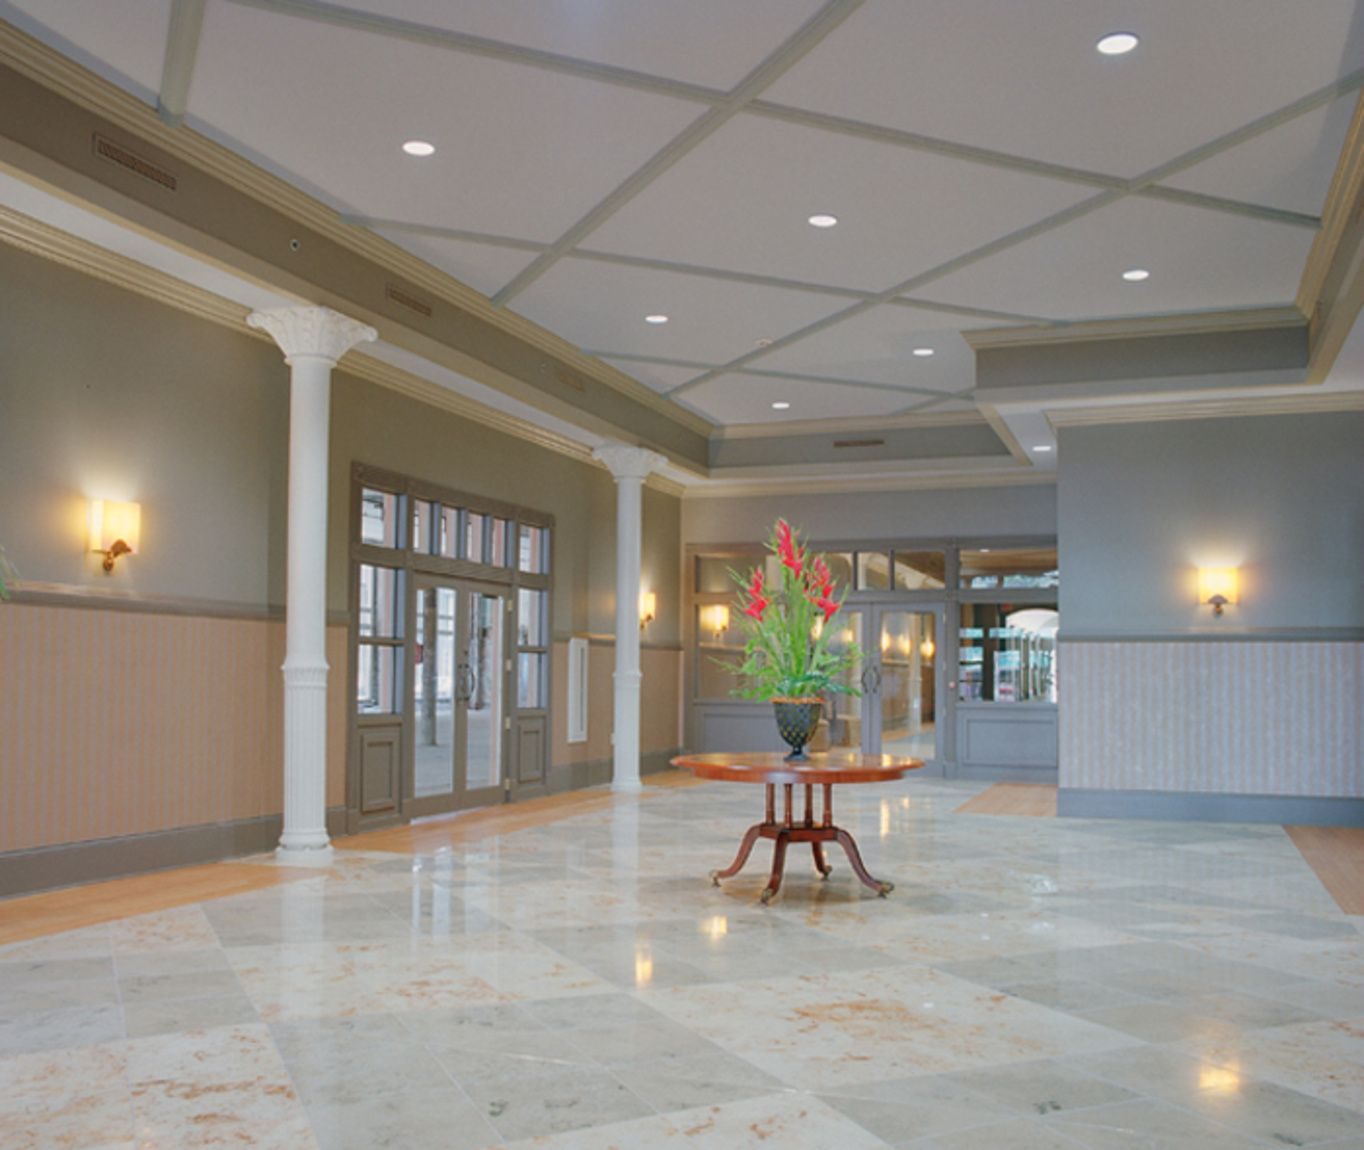 Interior Lobby of Loveman's Building in downtown